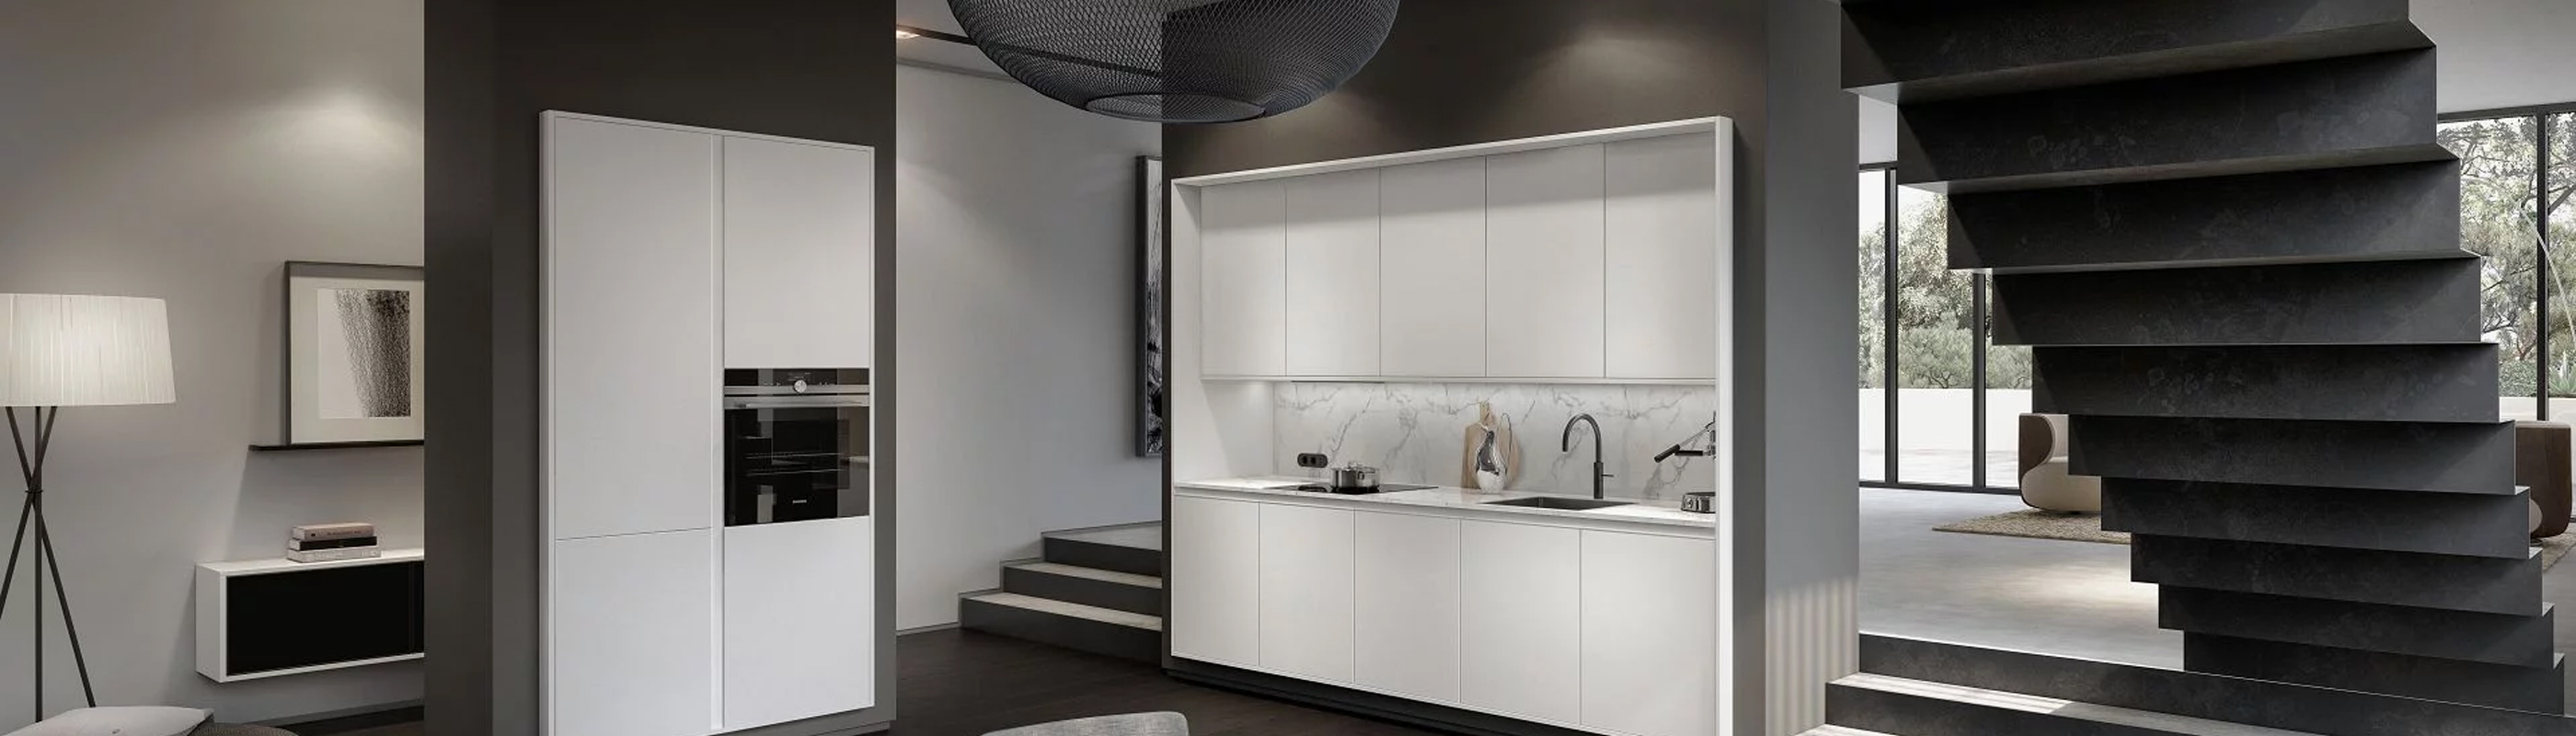 Welcome To Zest Suppliers Of Luxury Bathrooms Kitchens